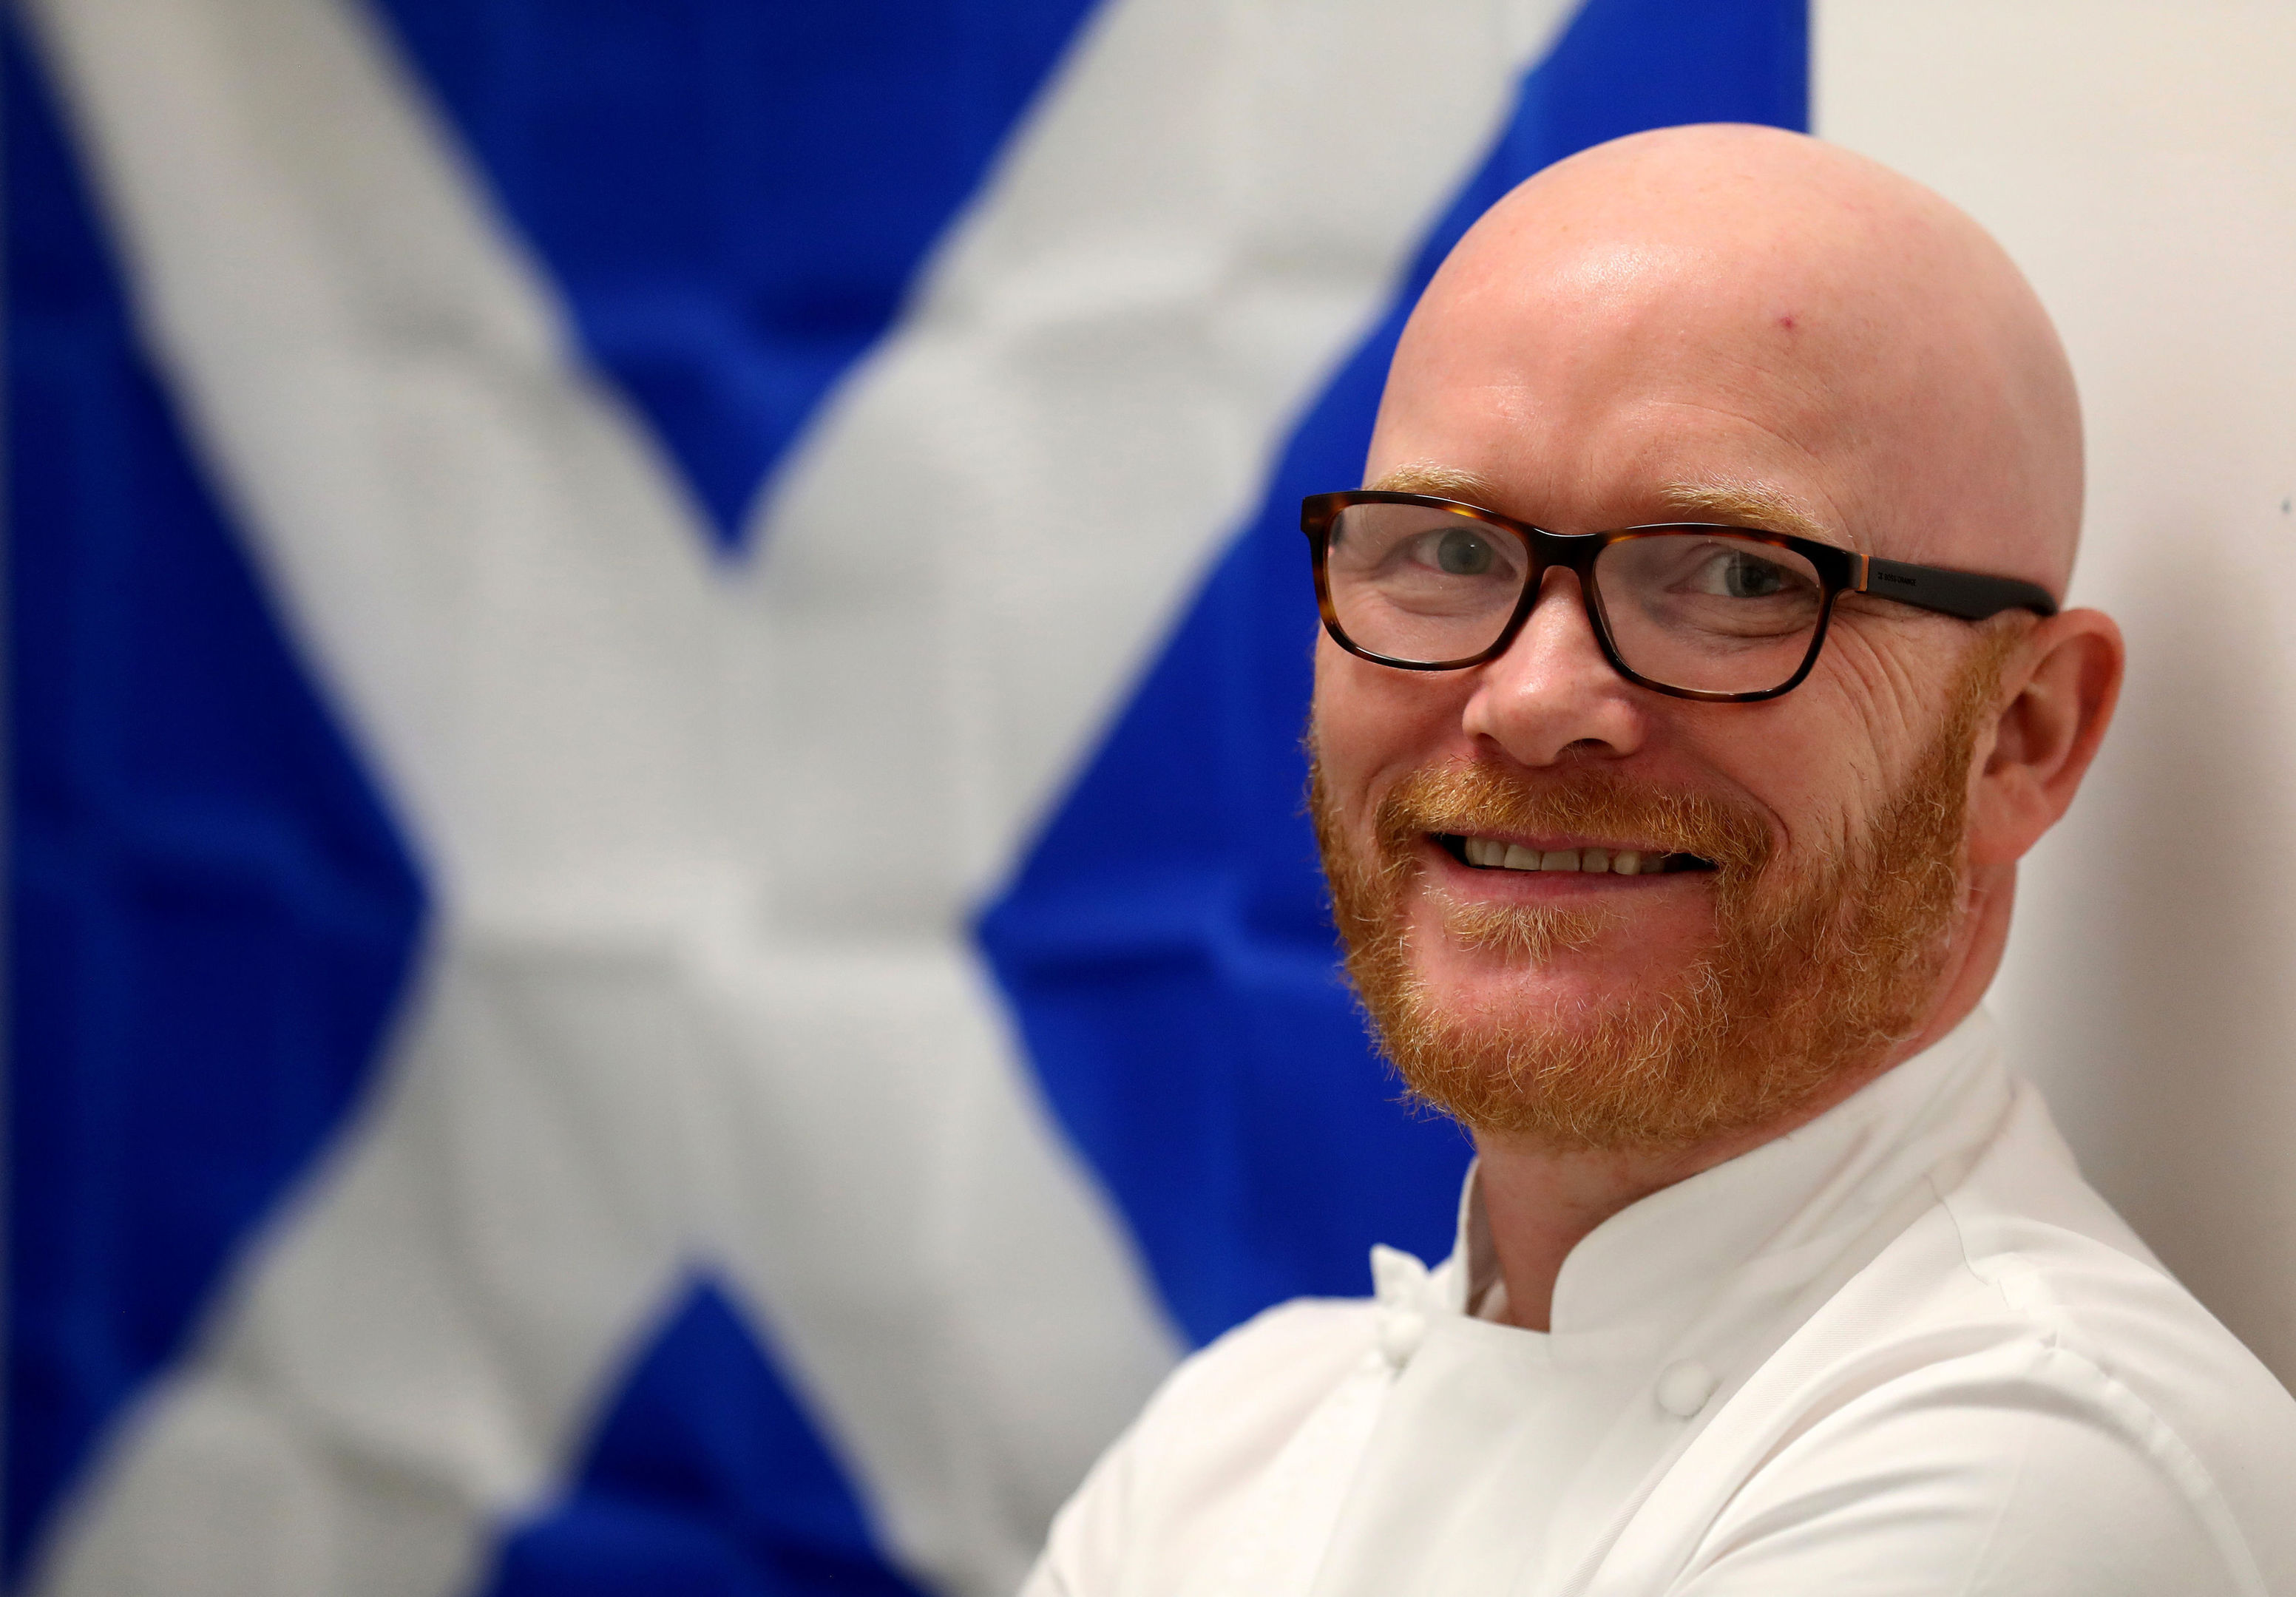 Gary Maclean, who has been named Scotland's first National Chef by the Scottish Government. (Andrew Milligan/PA Wire)